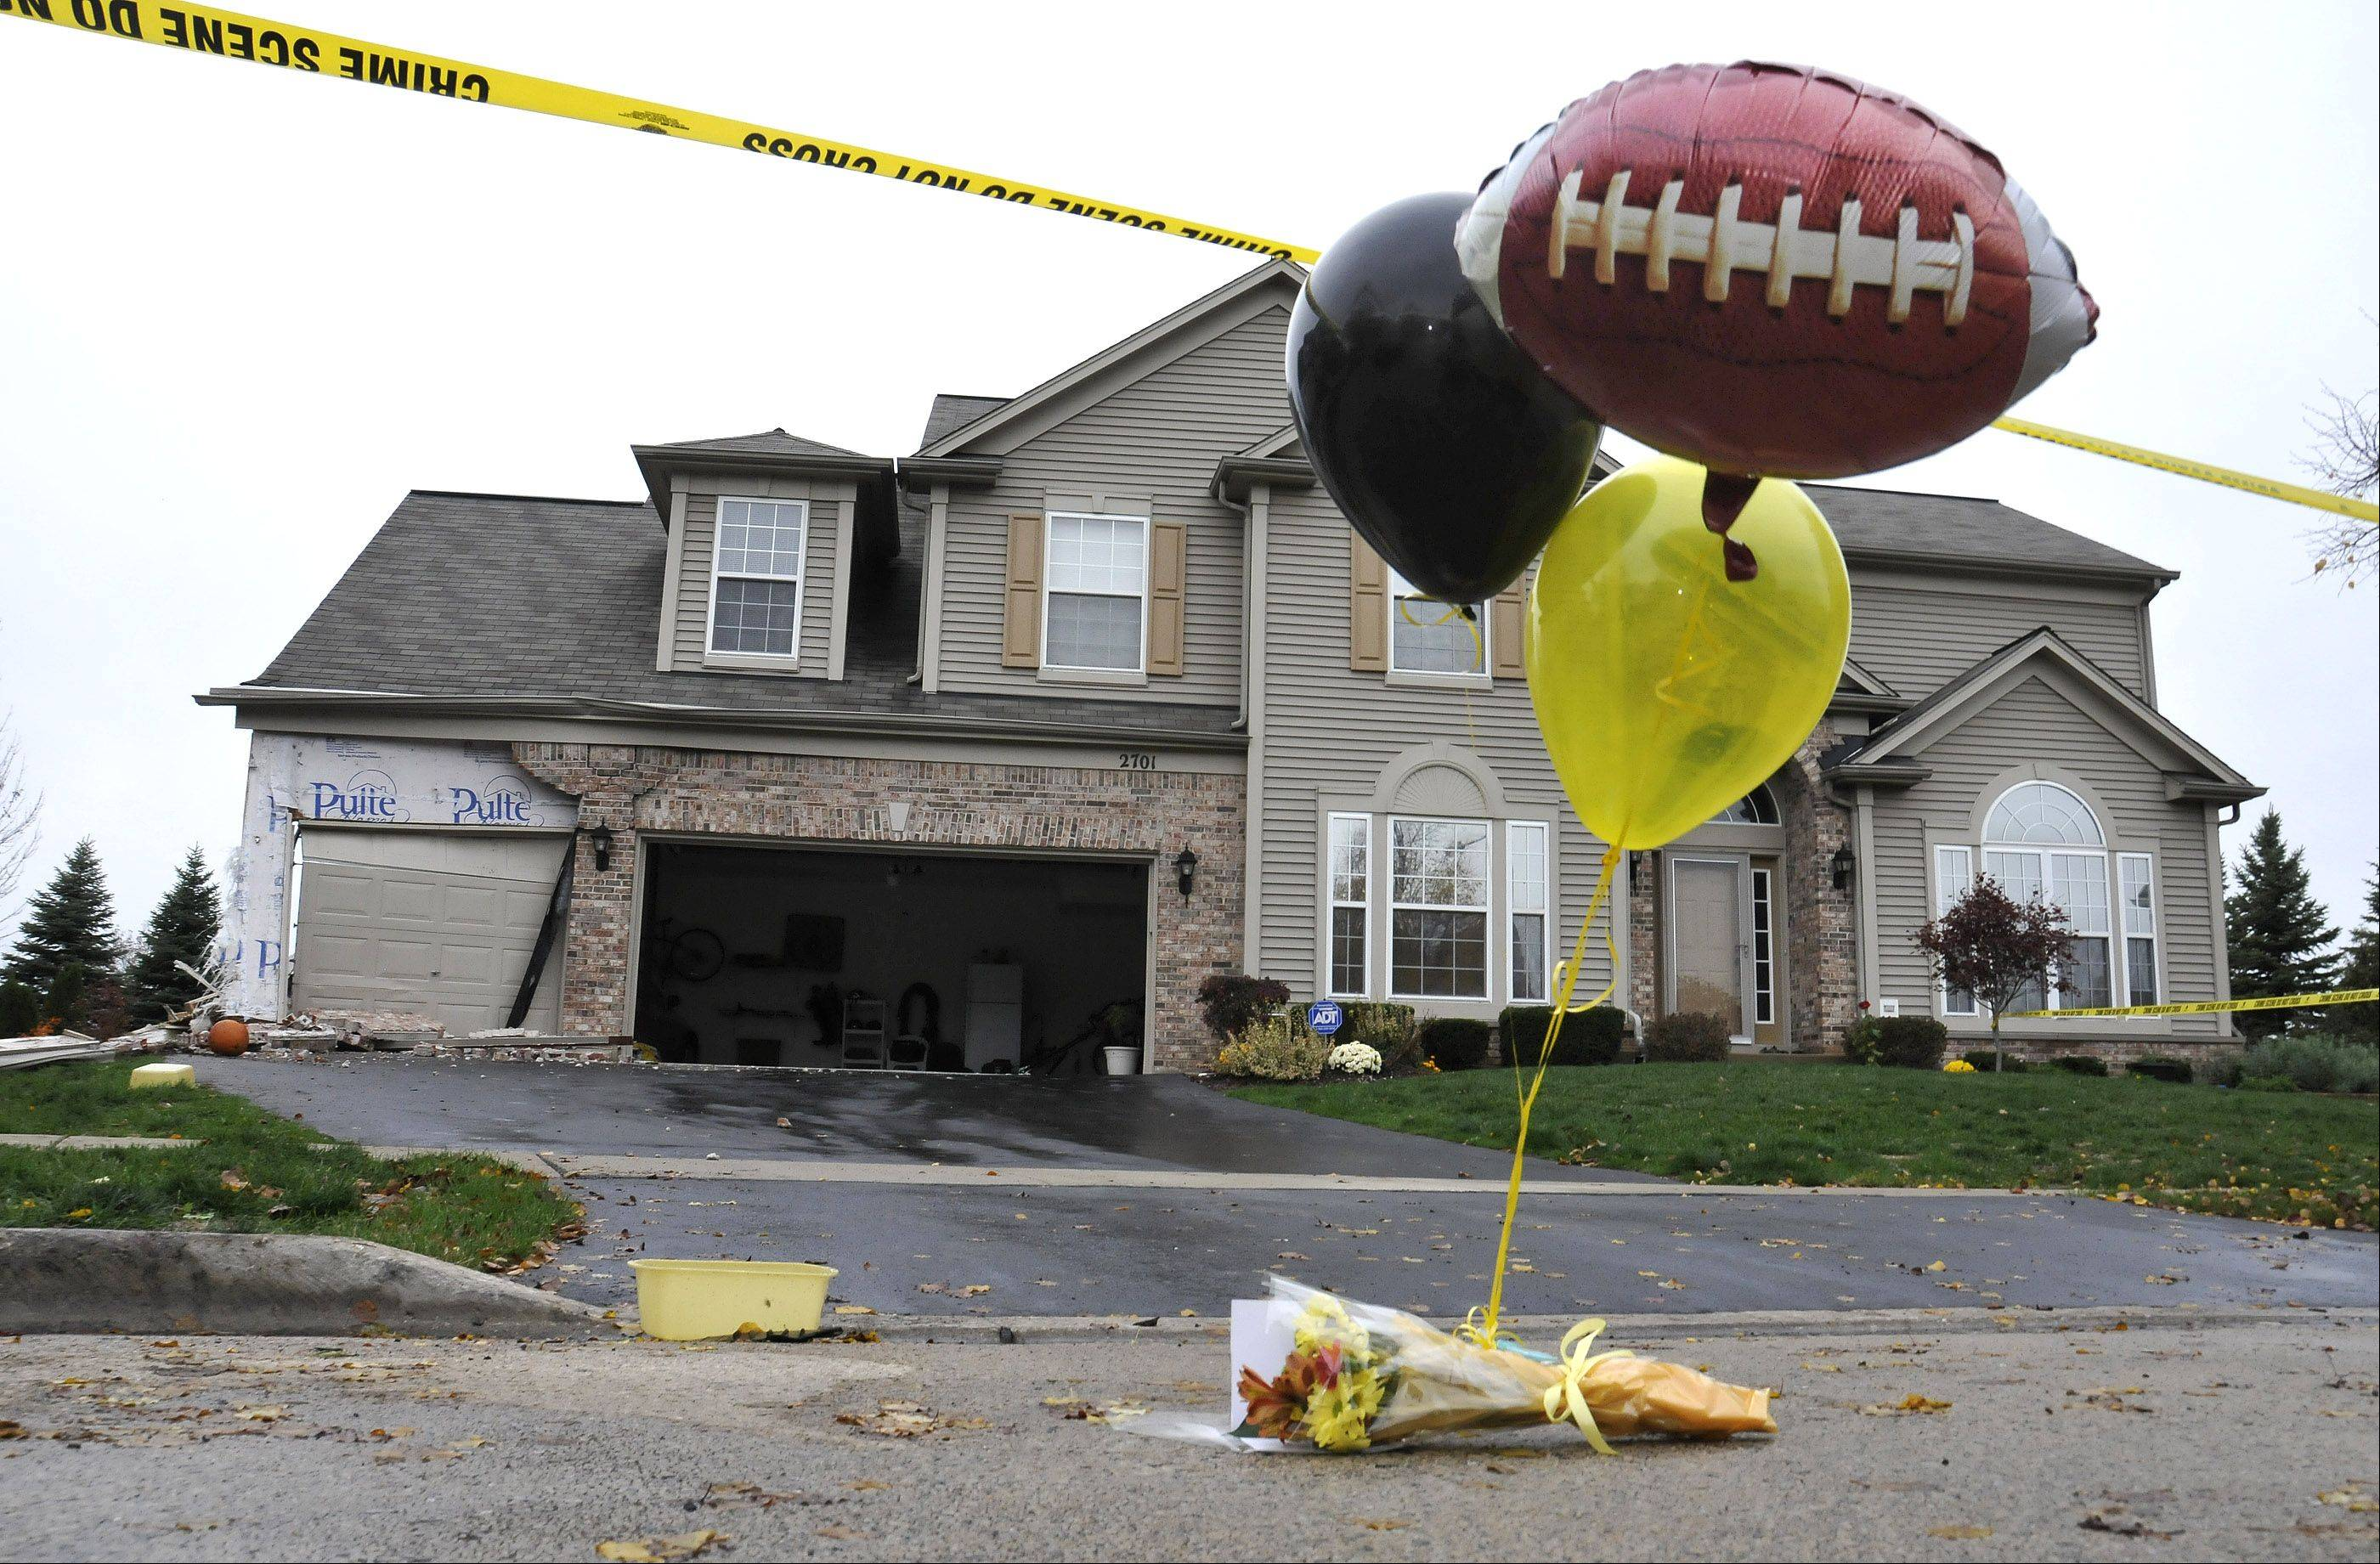 Friends and students of Metea Valley High School football player and fellow student Devin Meadows stop by the house in the 2700 block of Hamman Way in Aurora Tuesday morning. Meadows was killed earlier this morning when a car he was riding in went out of control and smashed into a house.